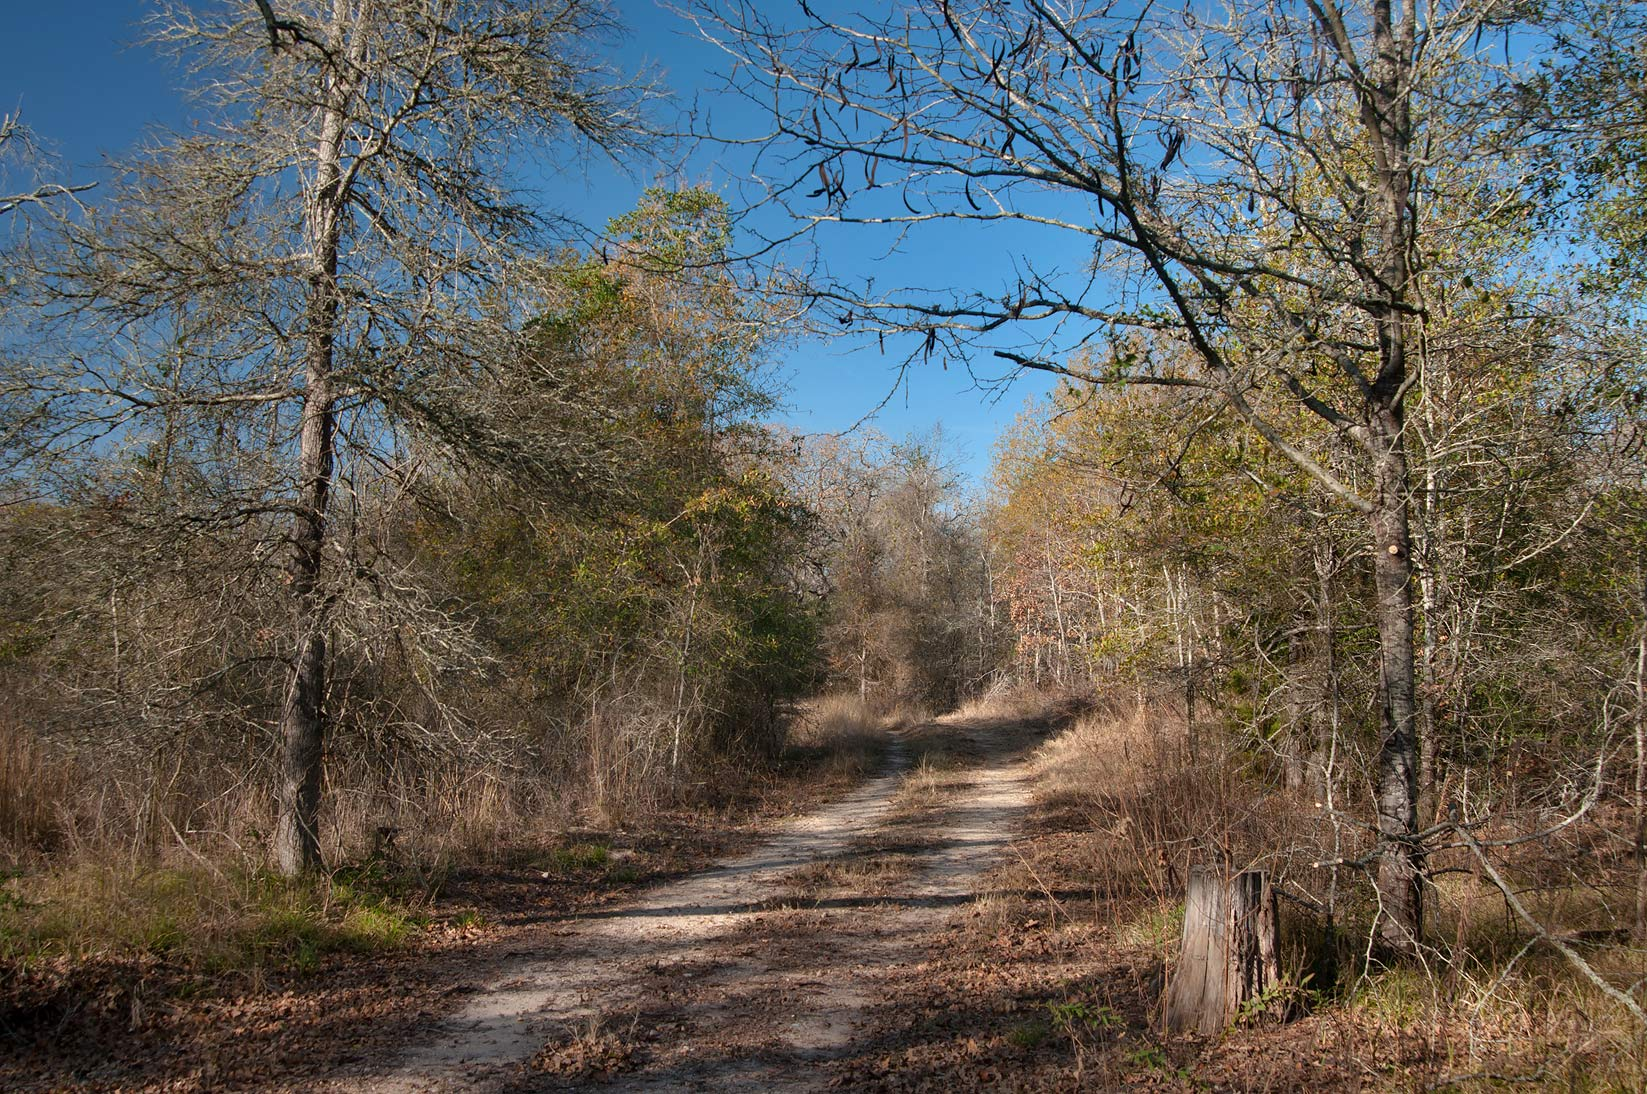 Road around the lake in Birch Creek Unit of Somerville Lake State Park. Texas